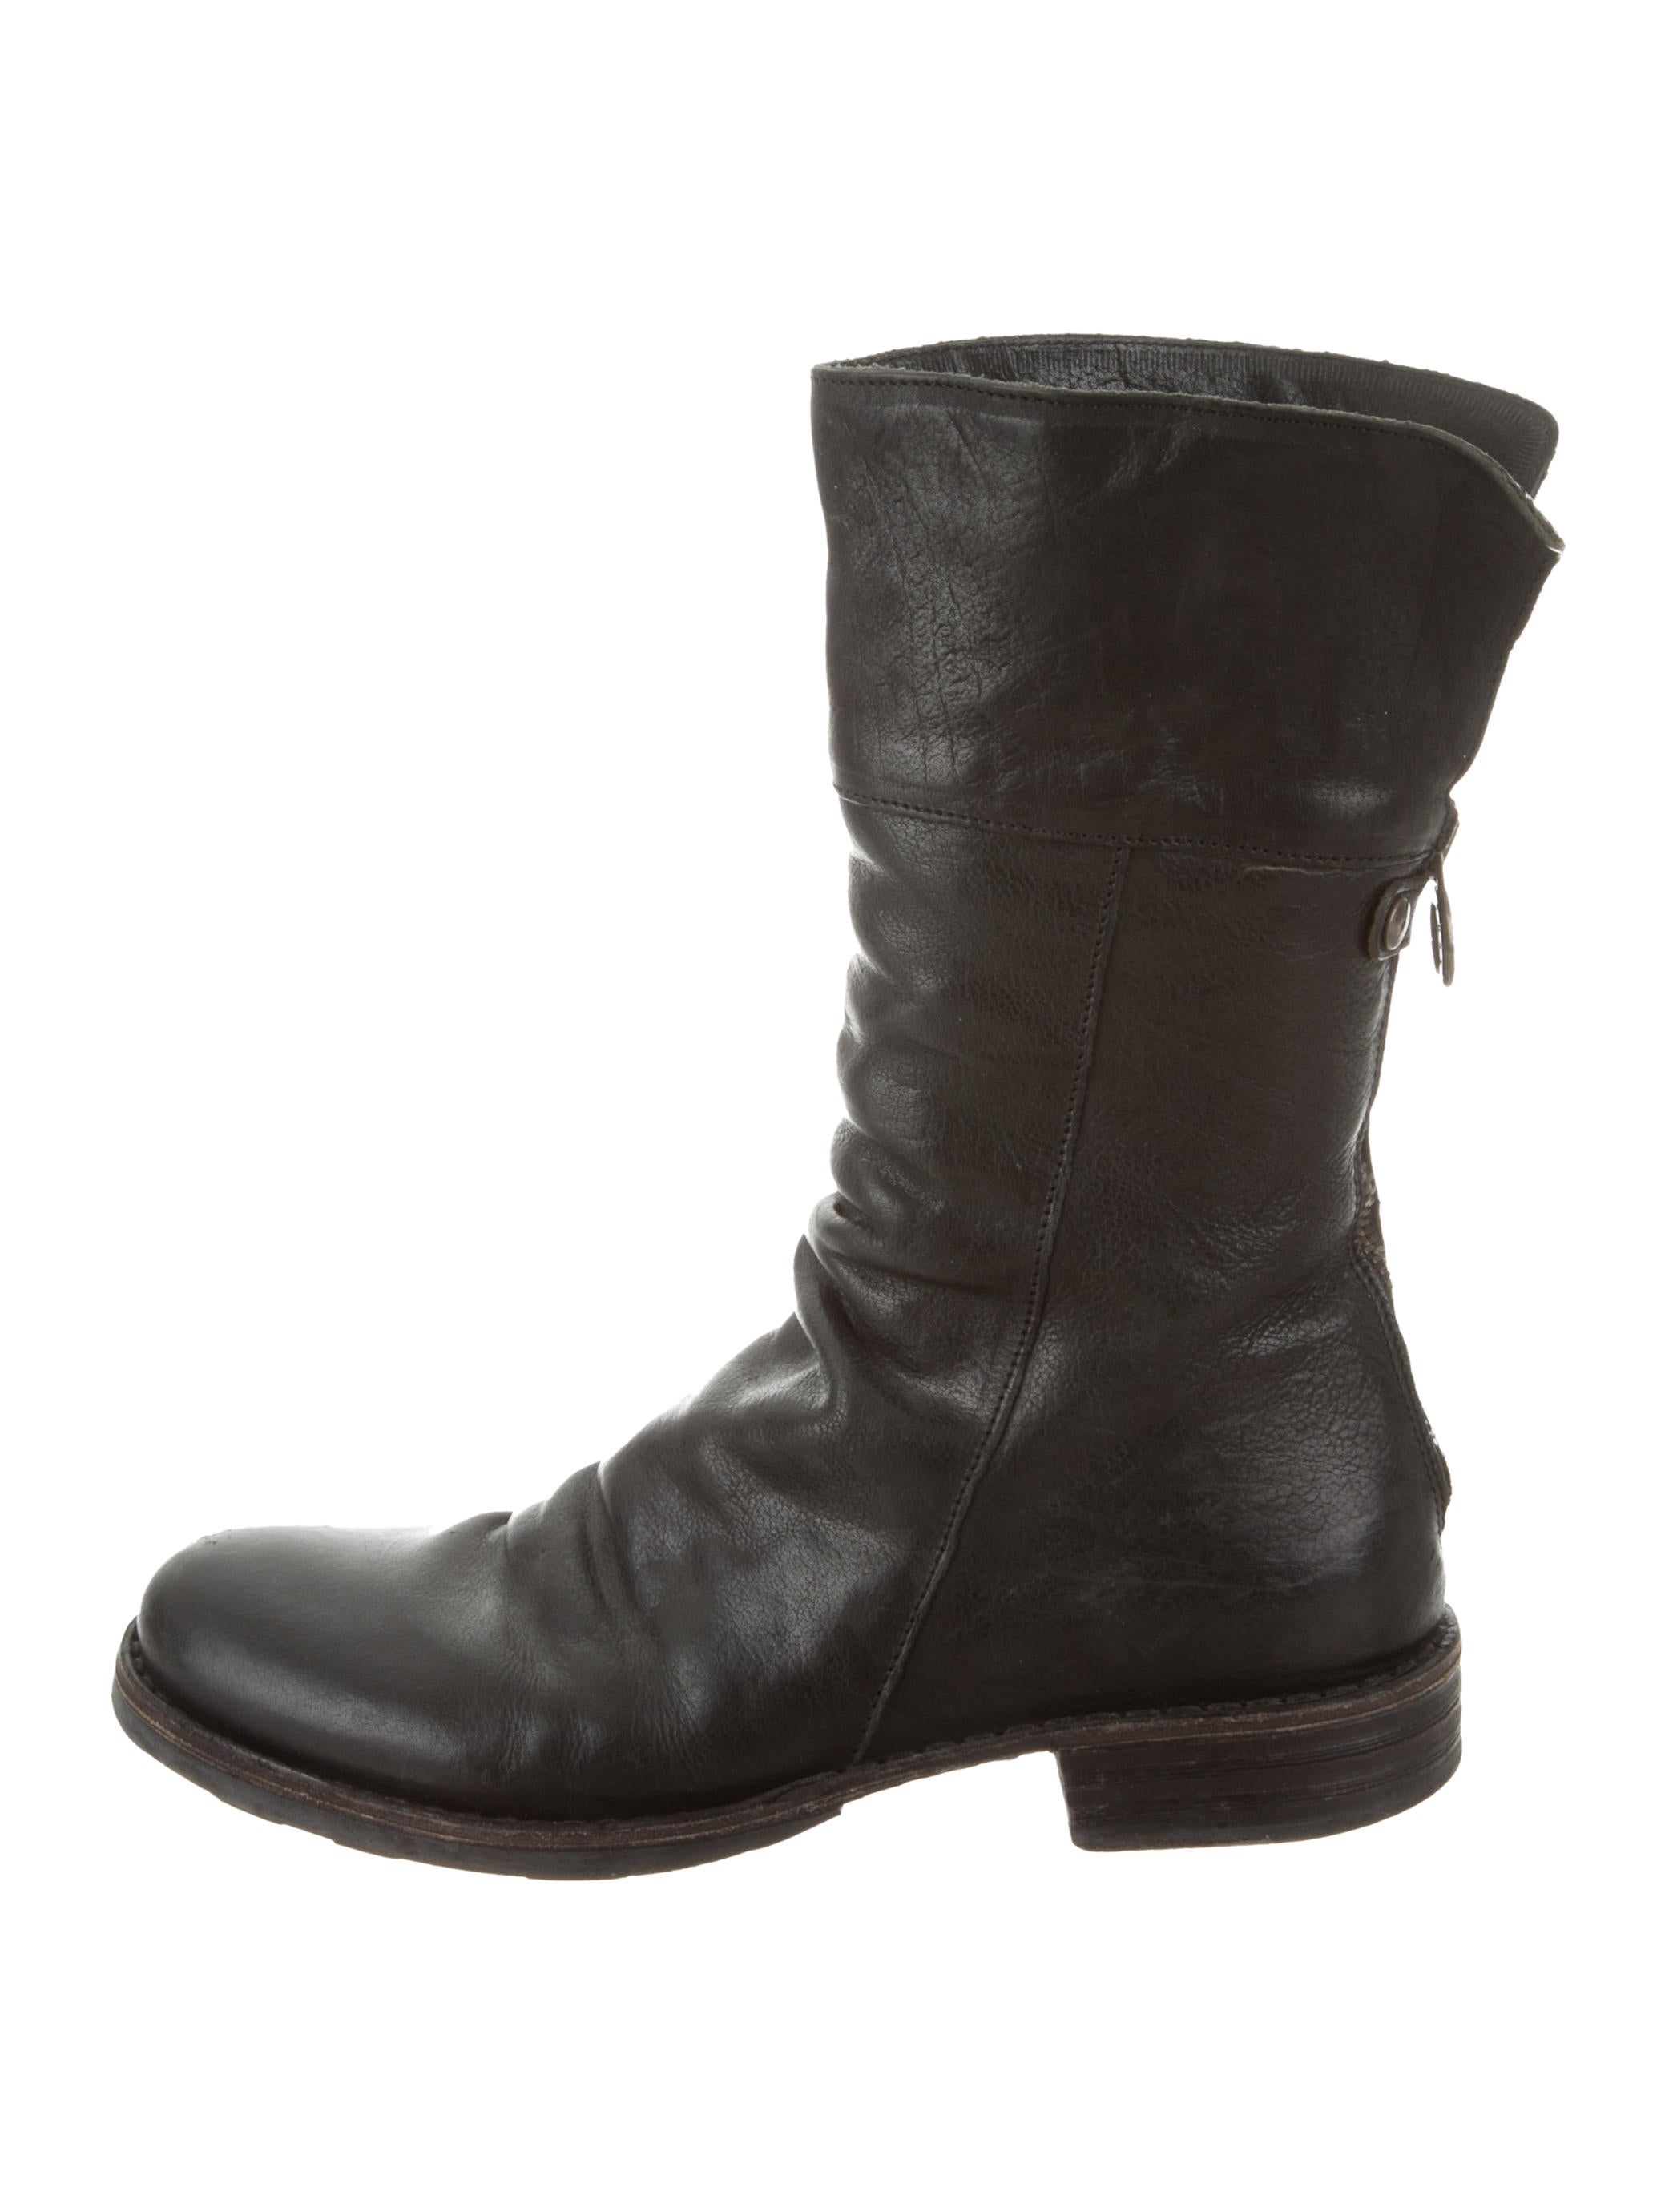 shop cheap online fast delivery sale online Fiorentini + Baker Round-Toe Mid-Calf Boots outlet view free shipping deals 2015 new for sale qeI8XcCCG